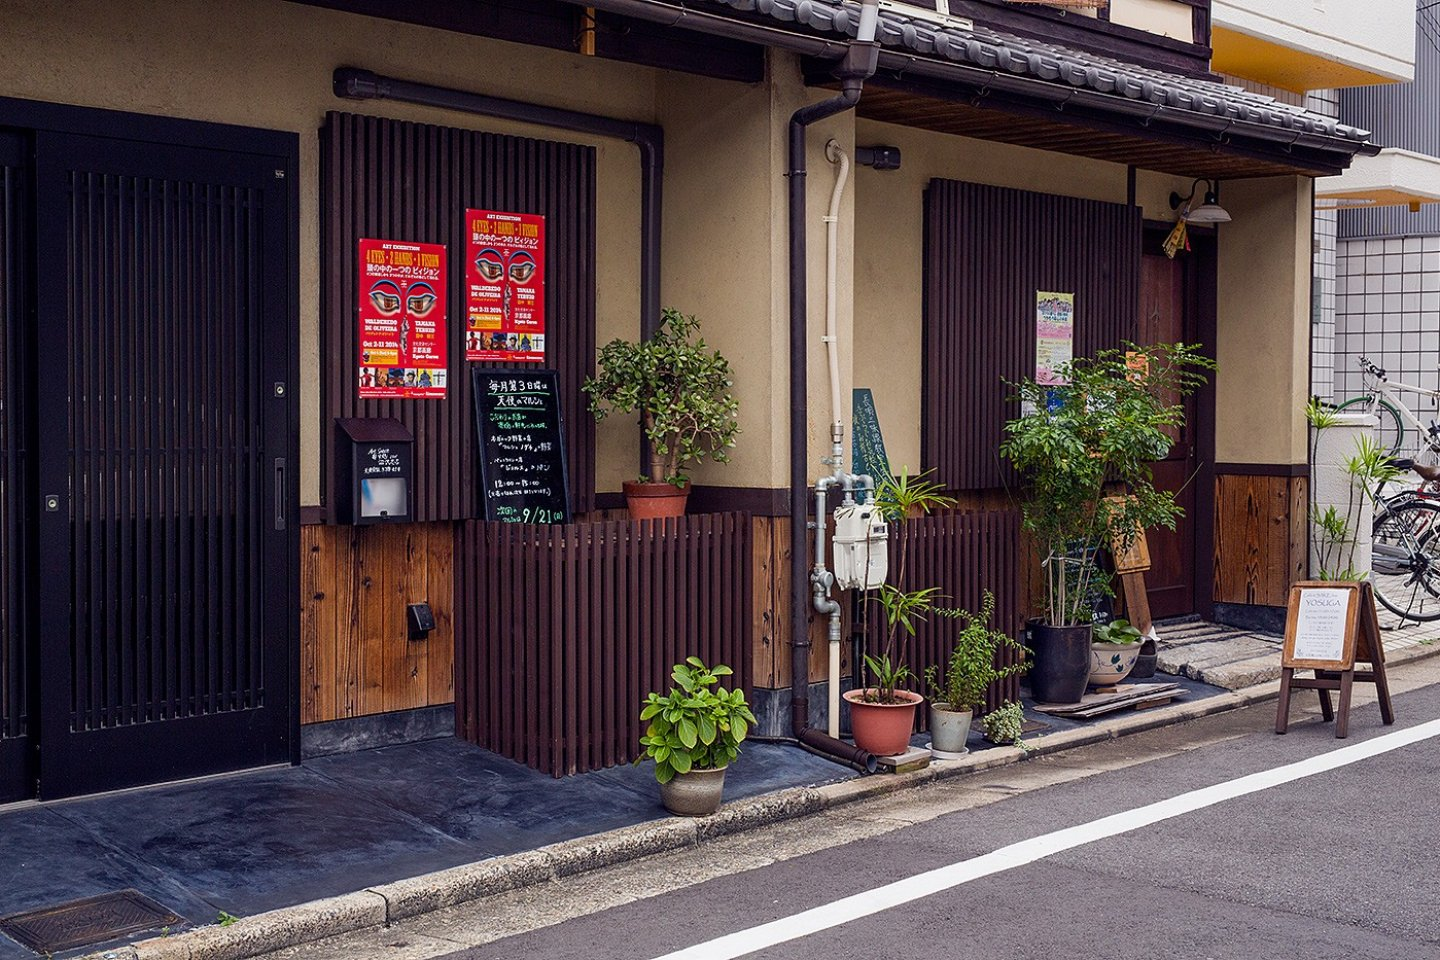 Art Space Yosuga is located in a twin pair of traditional Japanese houses and includes residences as well as a gallery/bar